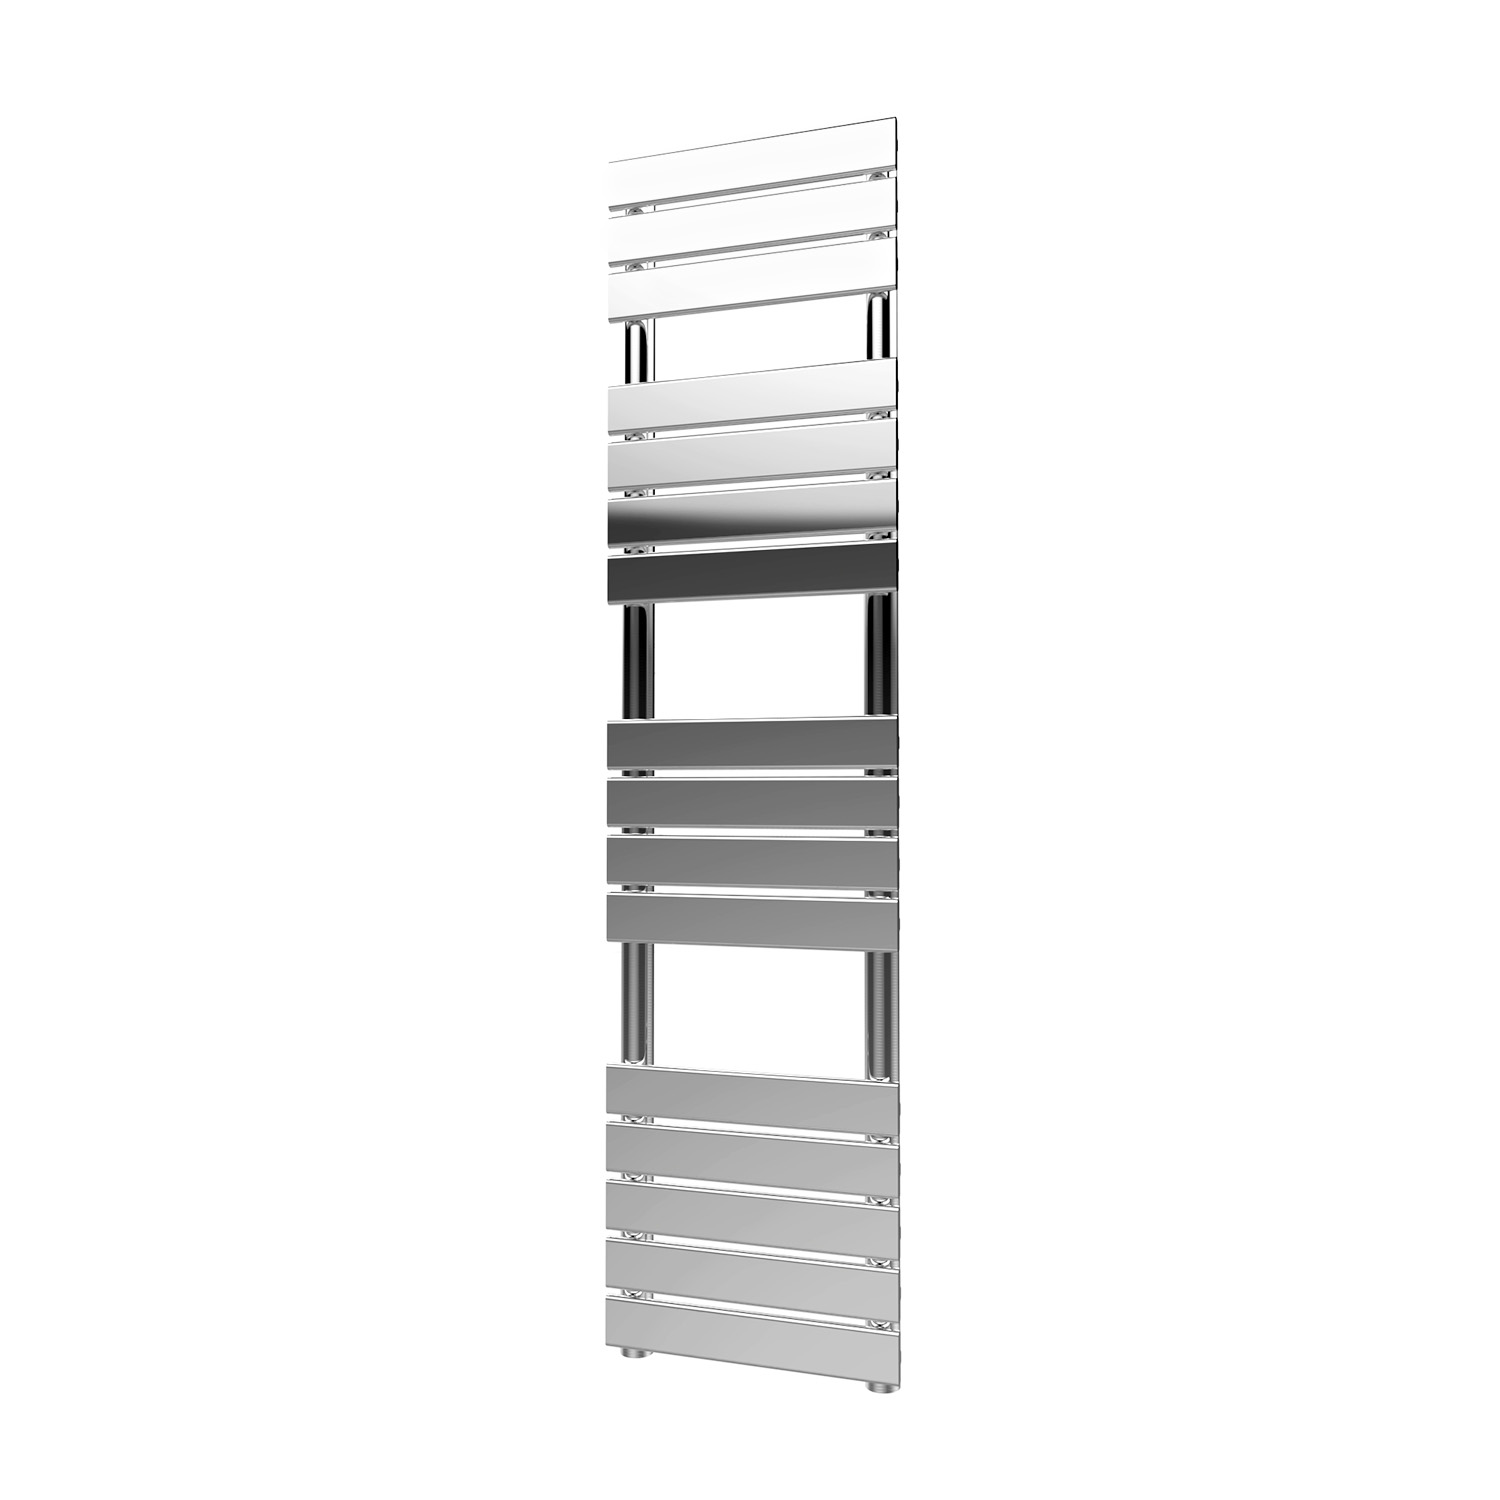 SALLY R1-1640 Stainless Steel Towel Radiator